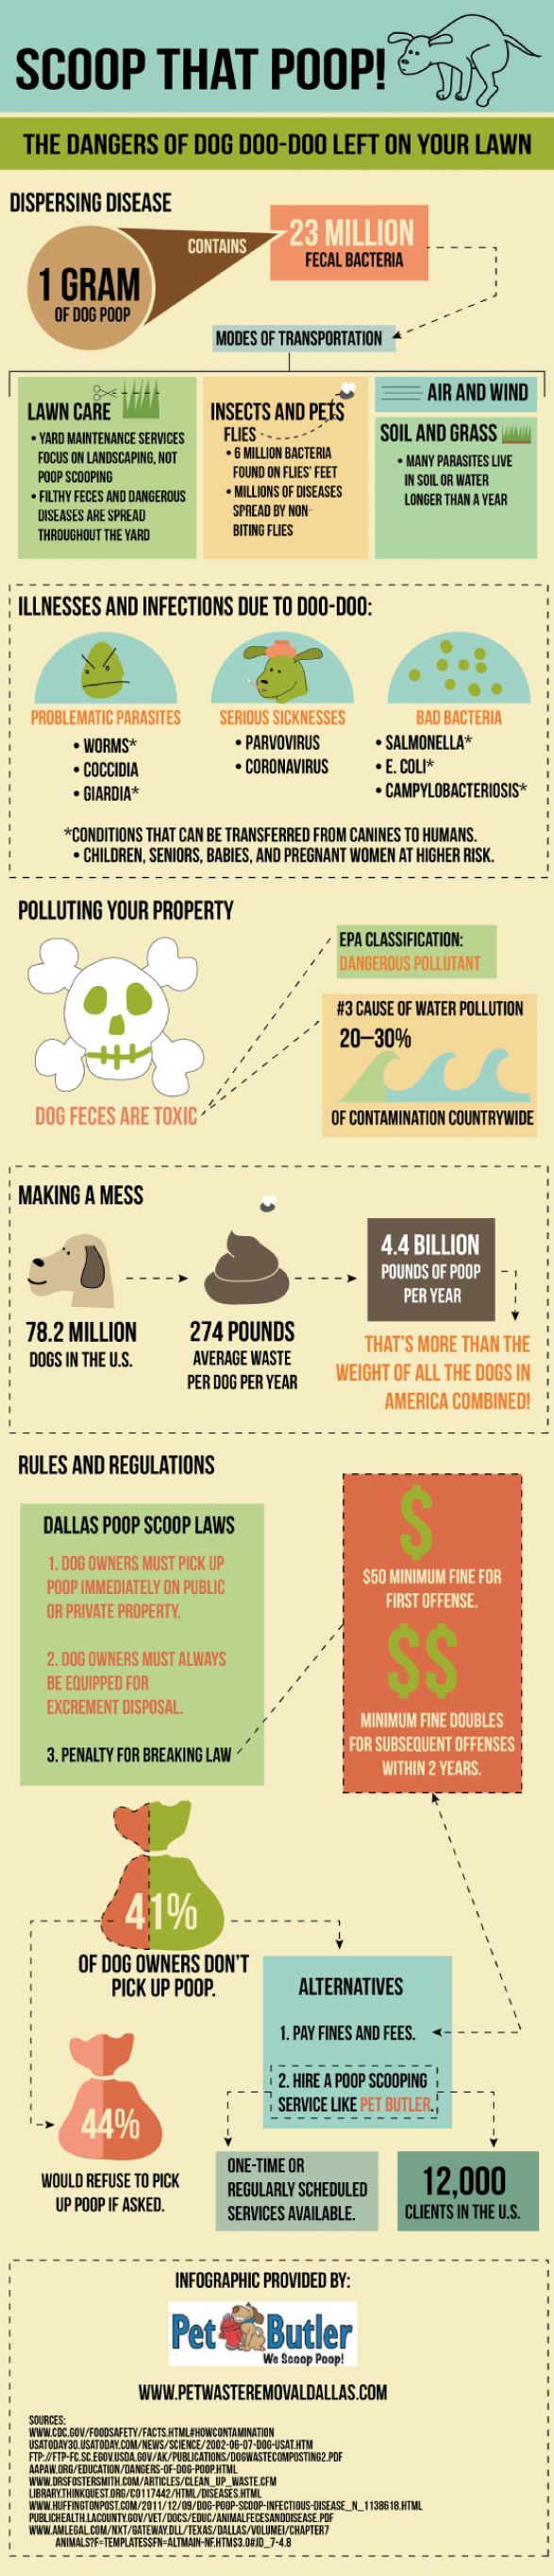 Scoop that Poop! The Dangers of Dog Doo-Doo Left on Your Lawn